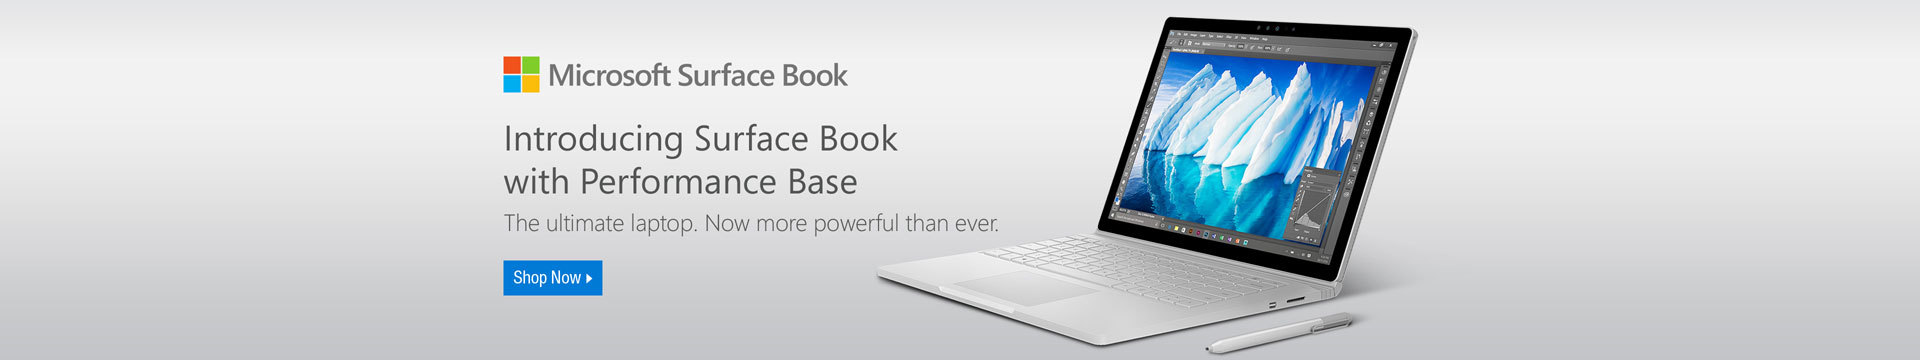 Introducing Surface Book with Performance Base